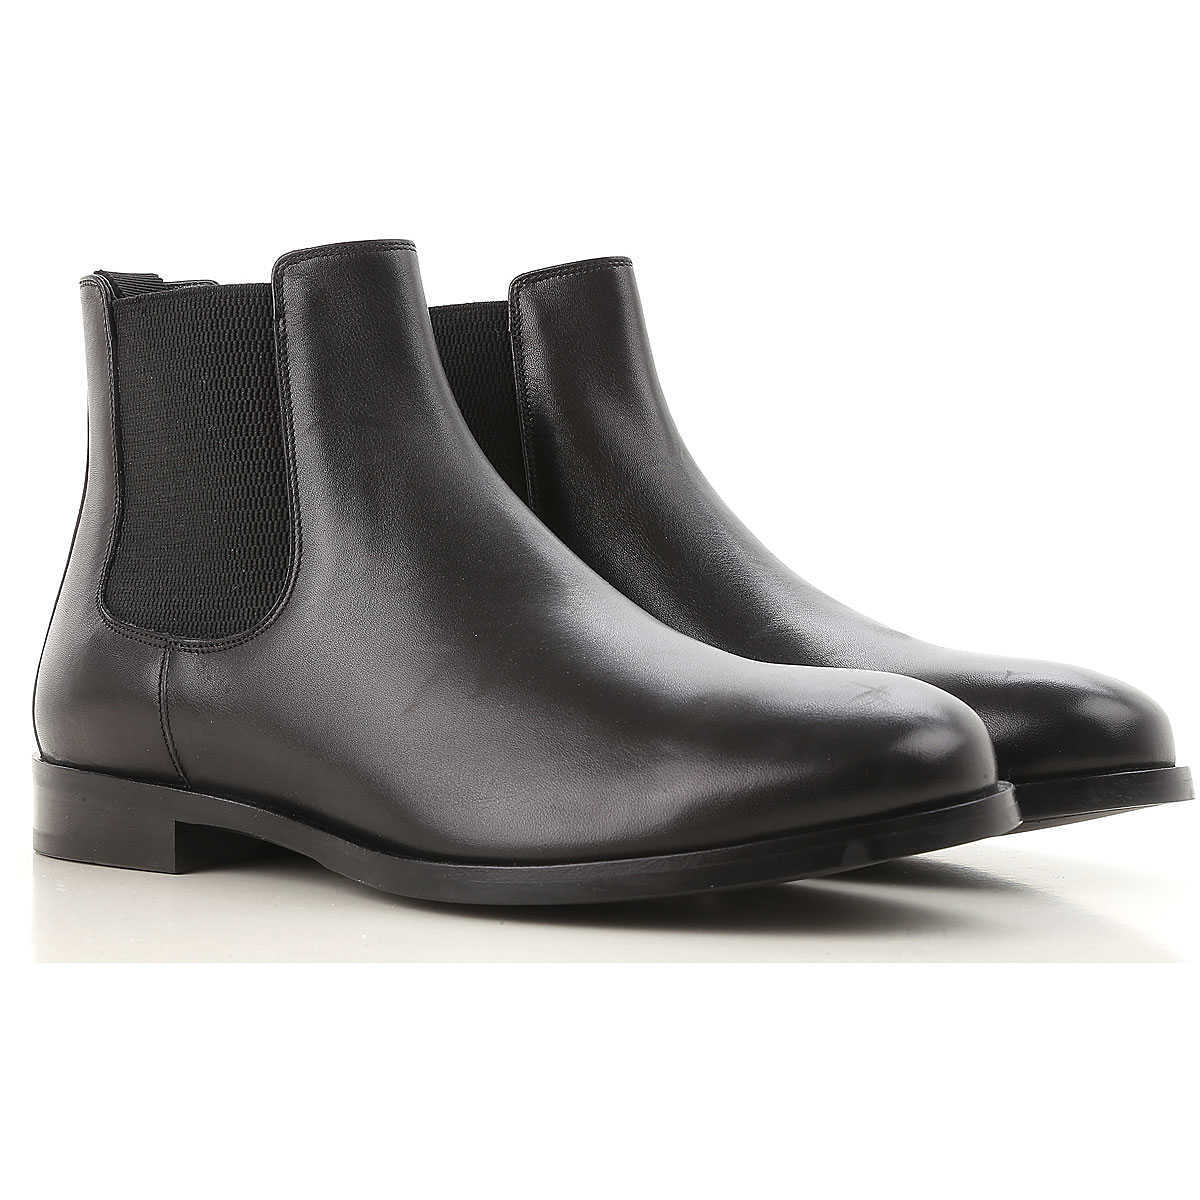 Dolce & Gabbana Boots for Men Booties On Sale in Outlet - GOOFASH